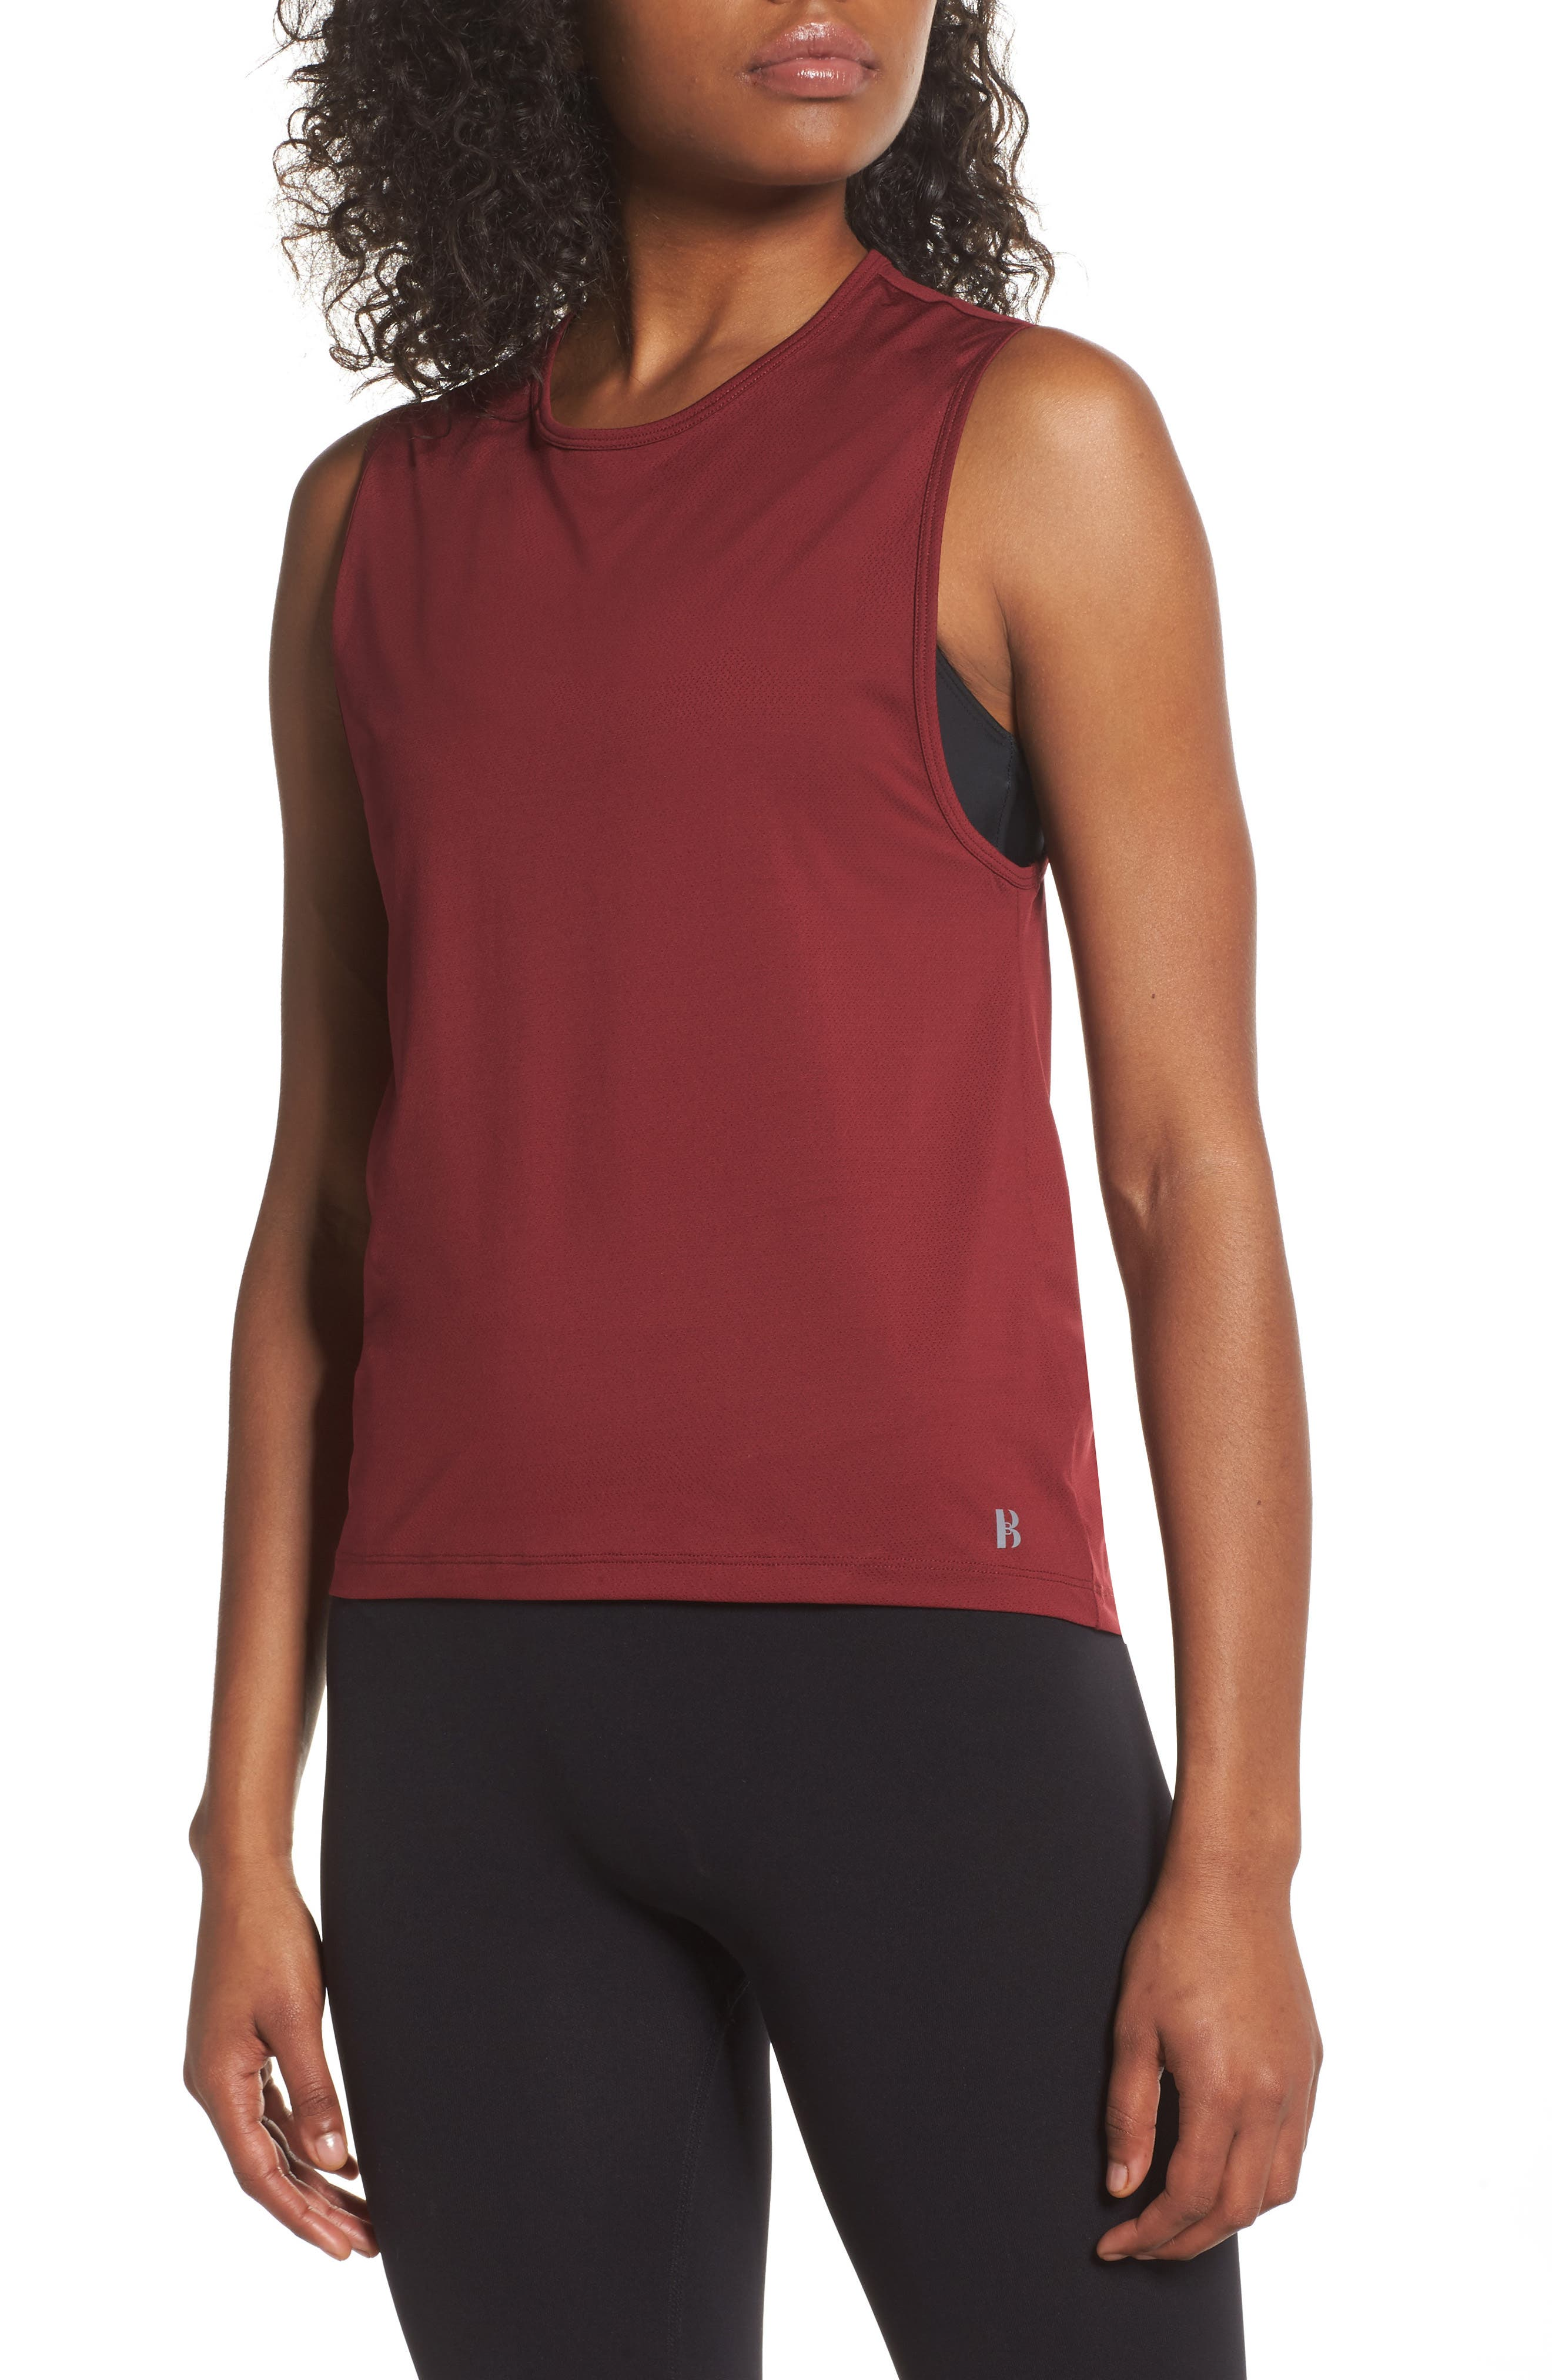 Main Image - BoomBoom Athletica Muscle Tank